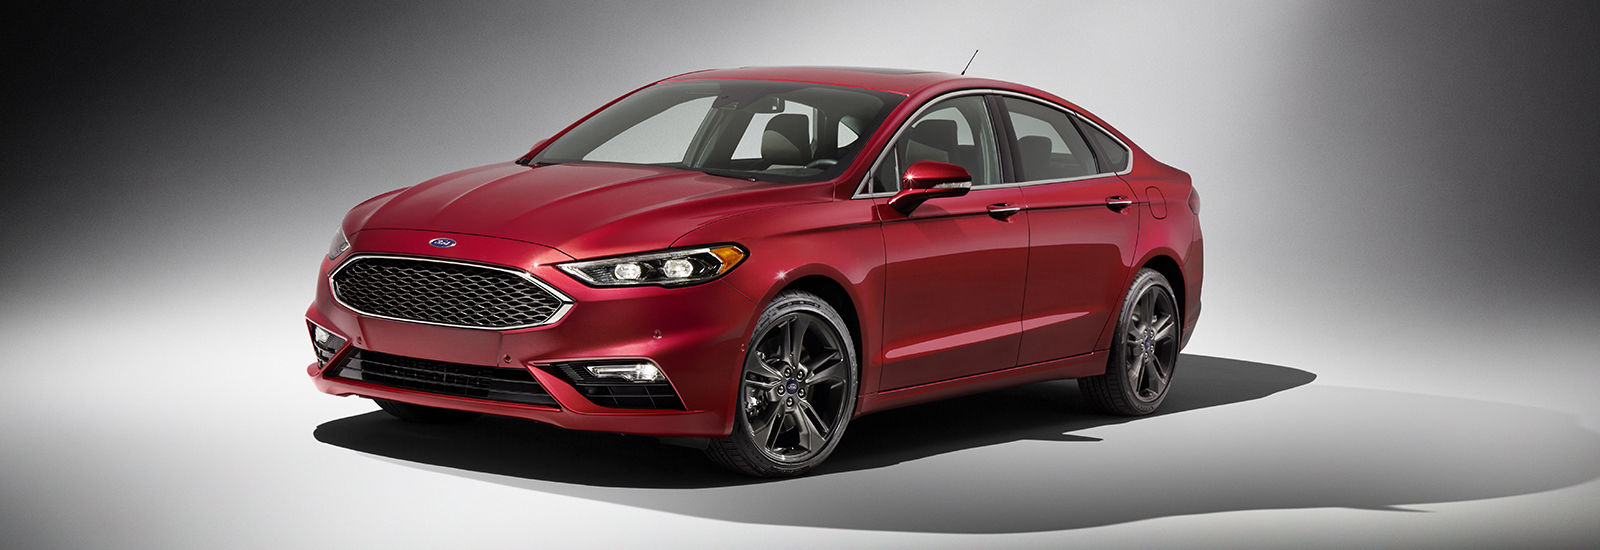 2018 ford uk. simple ford as the pictures show new model gets a more sharply defined and  aggressive grille sitting above restyled lower air intake to 2018 ford uk n